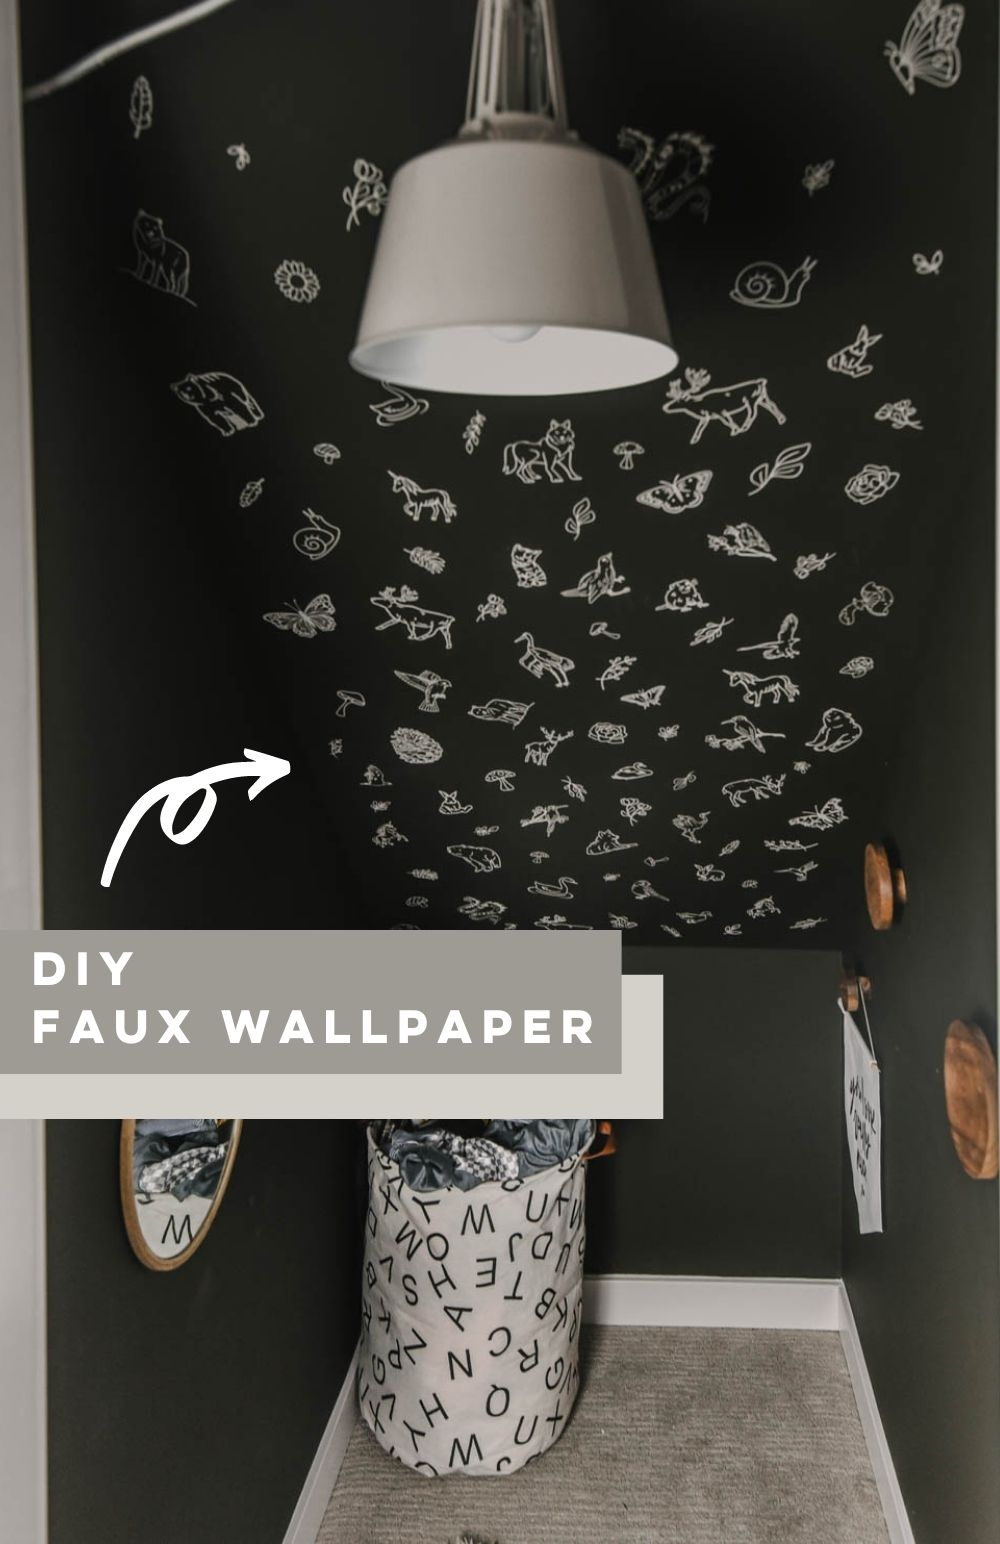 Magical wallpapered ceiling (diy!)